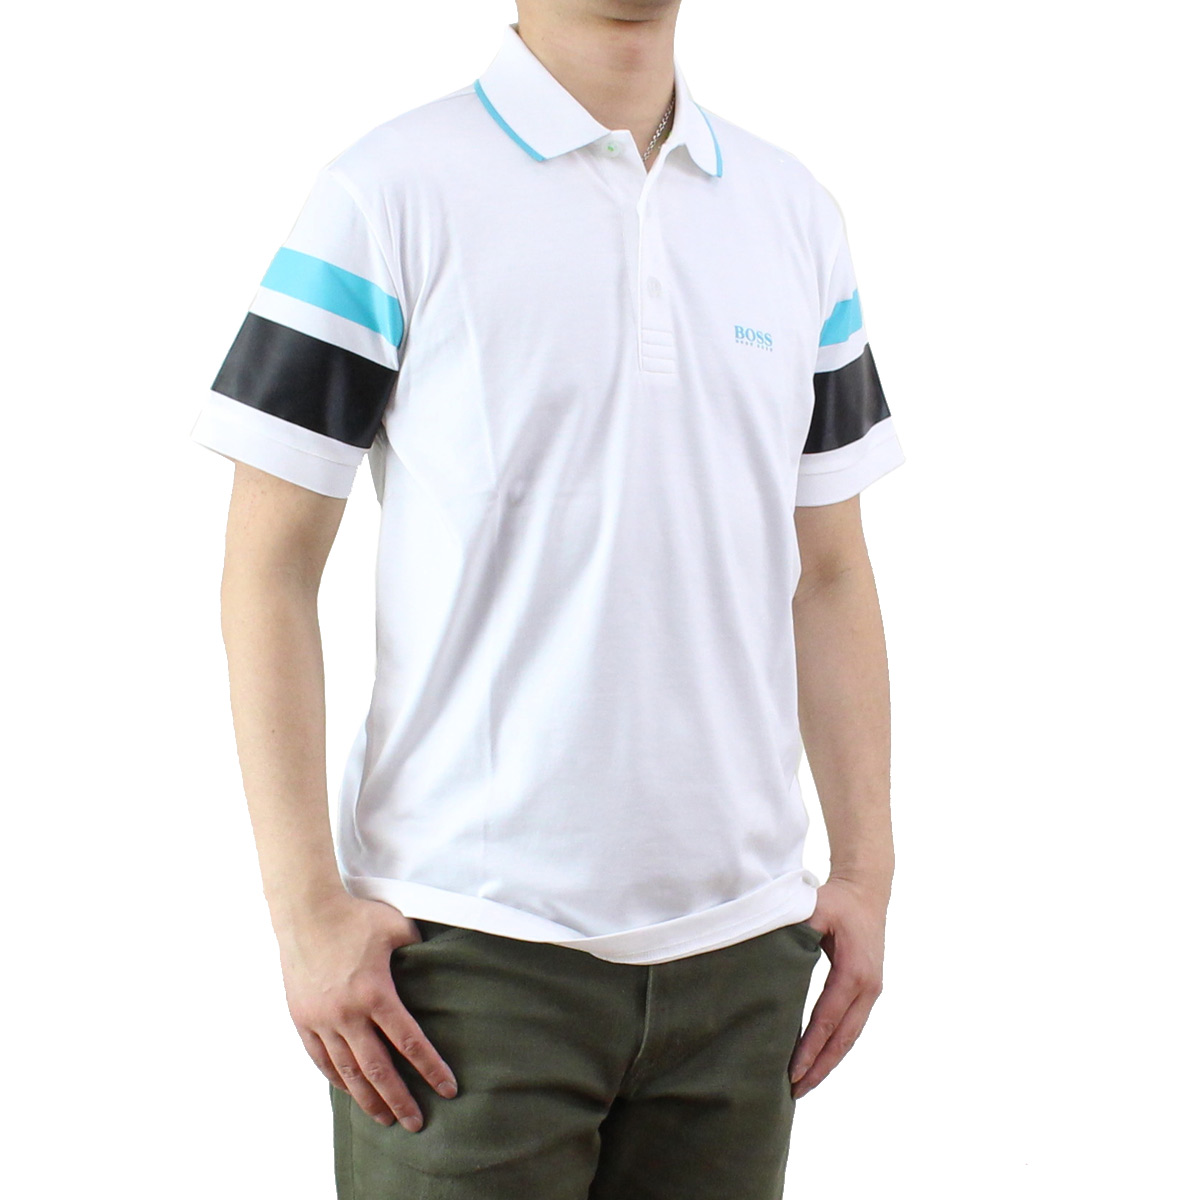 5bc3e800e Bighit The total brand wholesale: Hugo boss (HUGO BOSS) PADDY 5 men's polo  shirt 50329638 10175216 100 white system | Rakuten Global Market